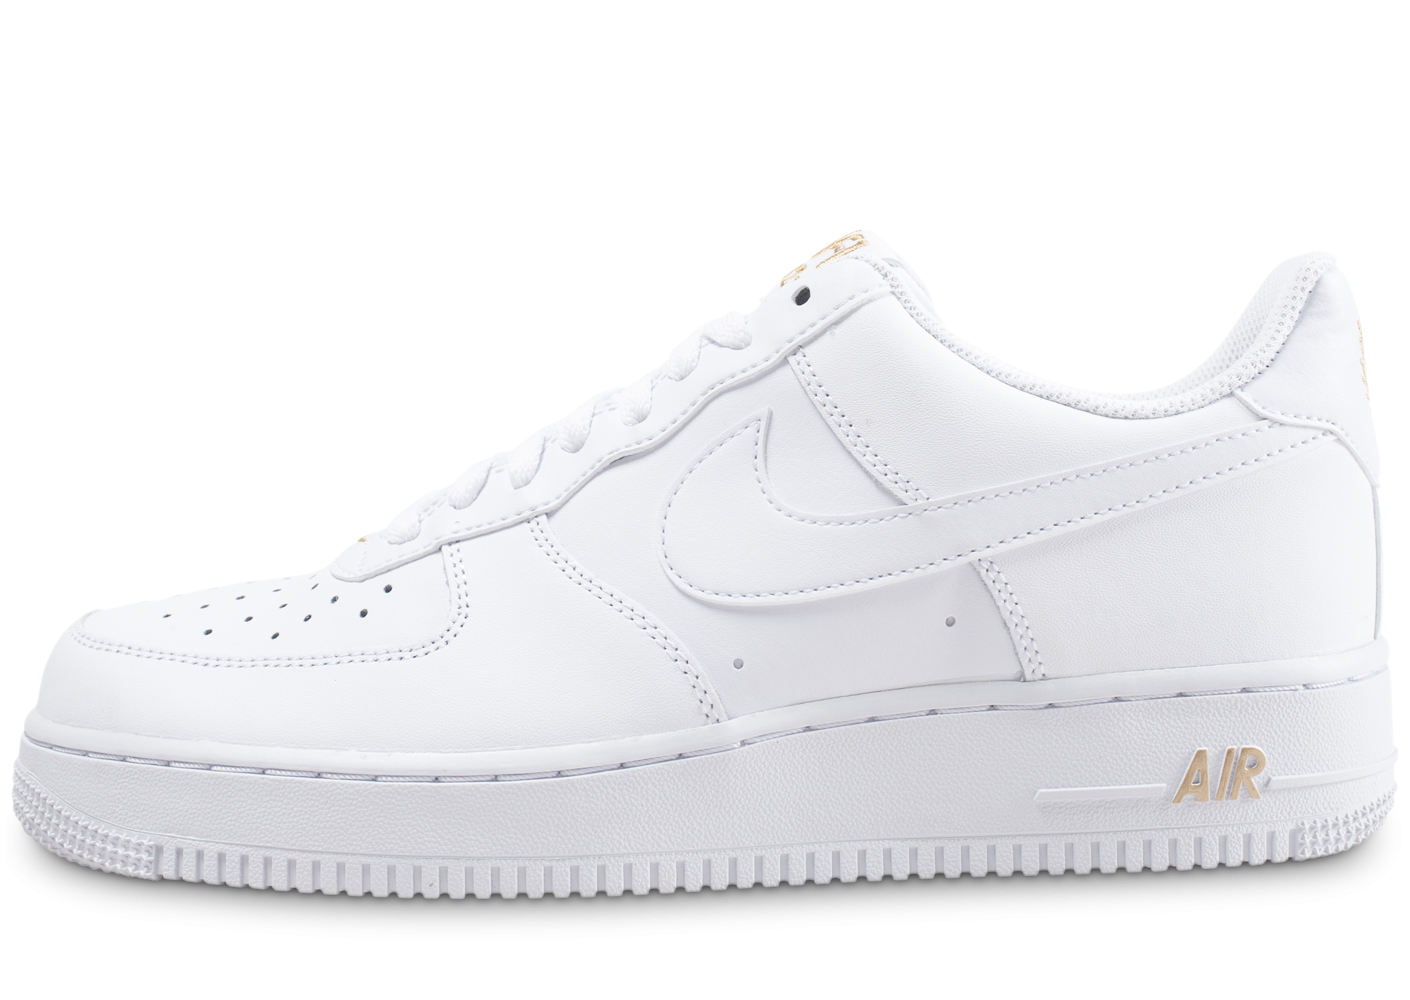 Nike Air Force 1 '07 Low Blanche et or